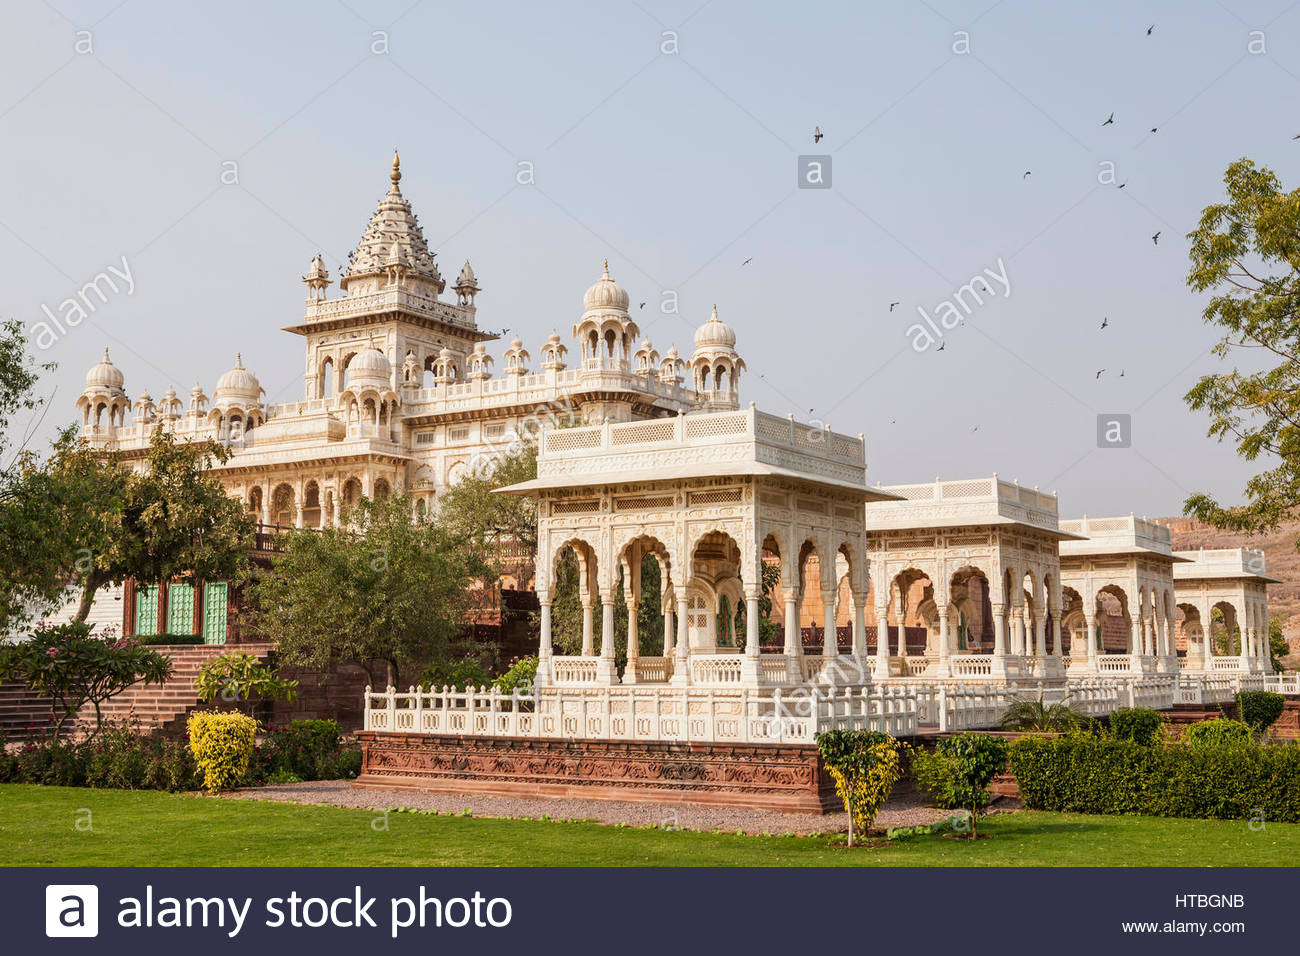 Jaswant Thada a monument and memorial s in Jodhpur, Rajasthan, India. - Stock Image